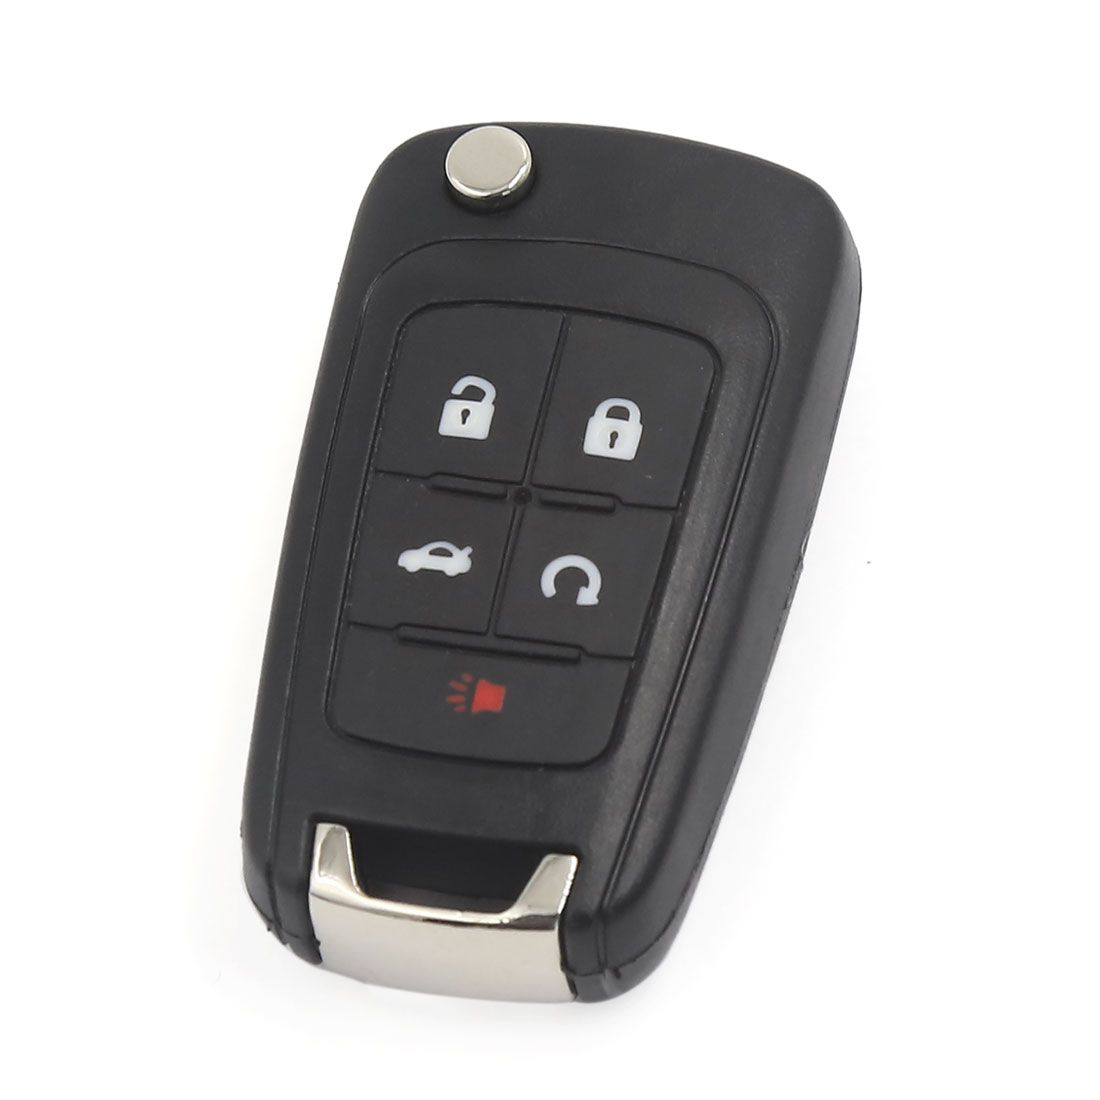 New Car Keyless Entry Remote Flip Key Fob Control for Chevrolet OHT01060512